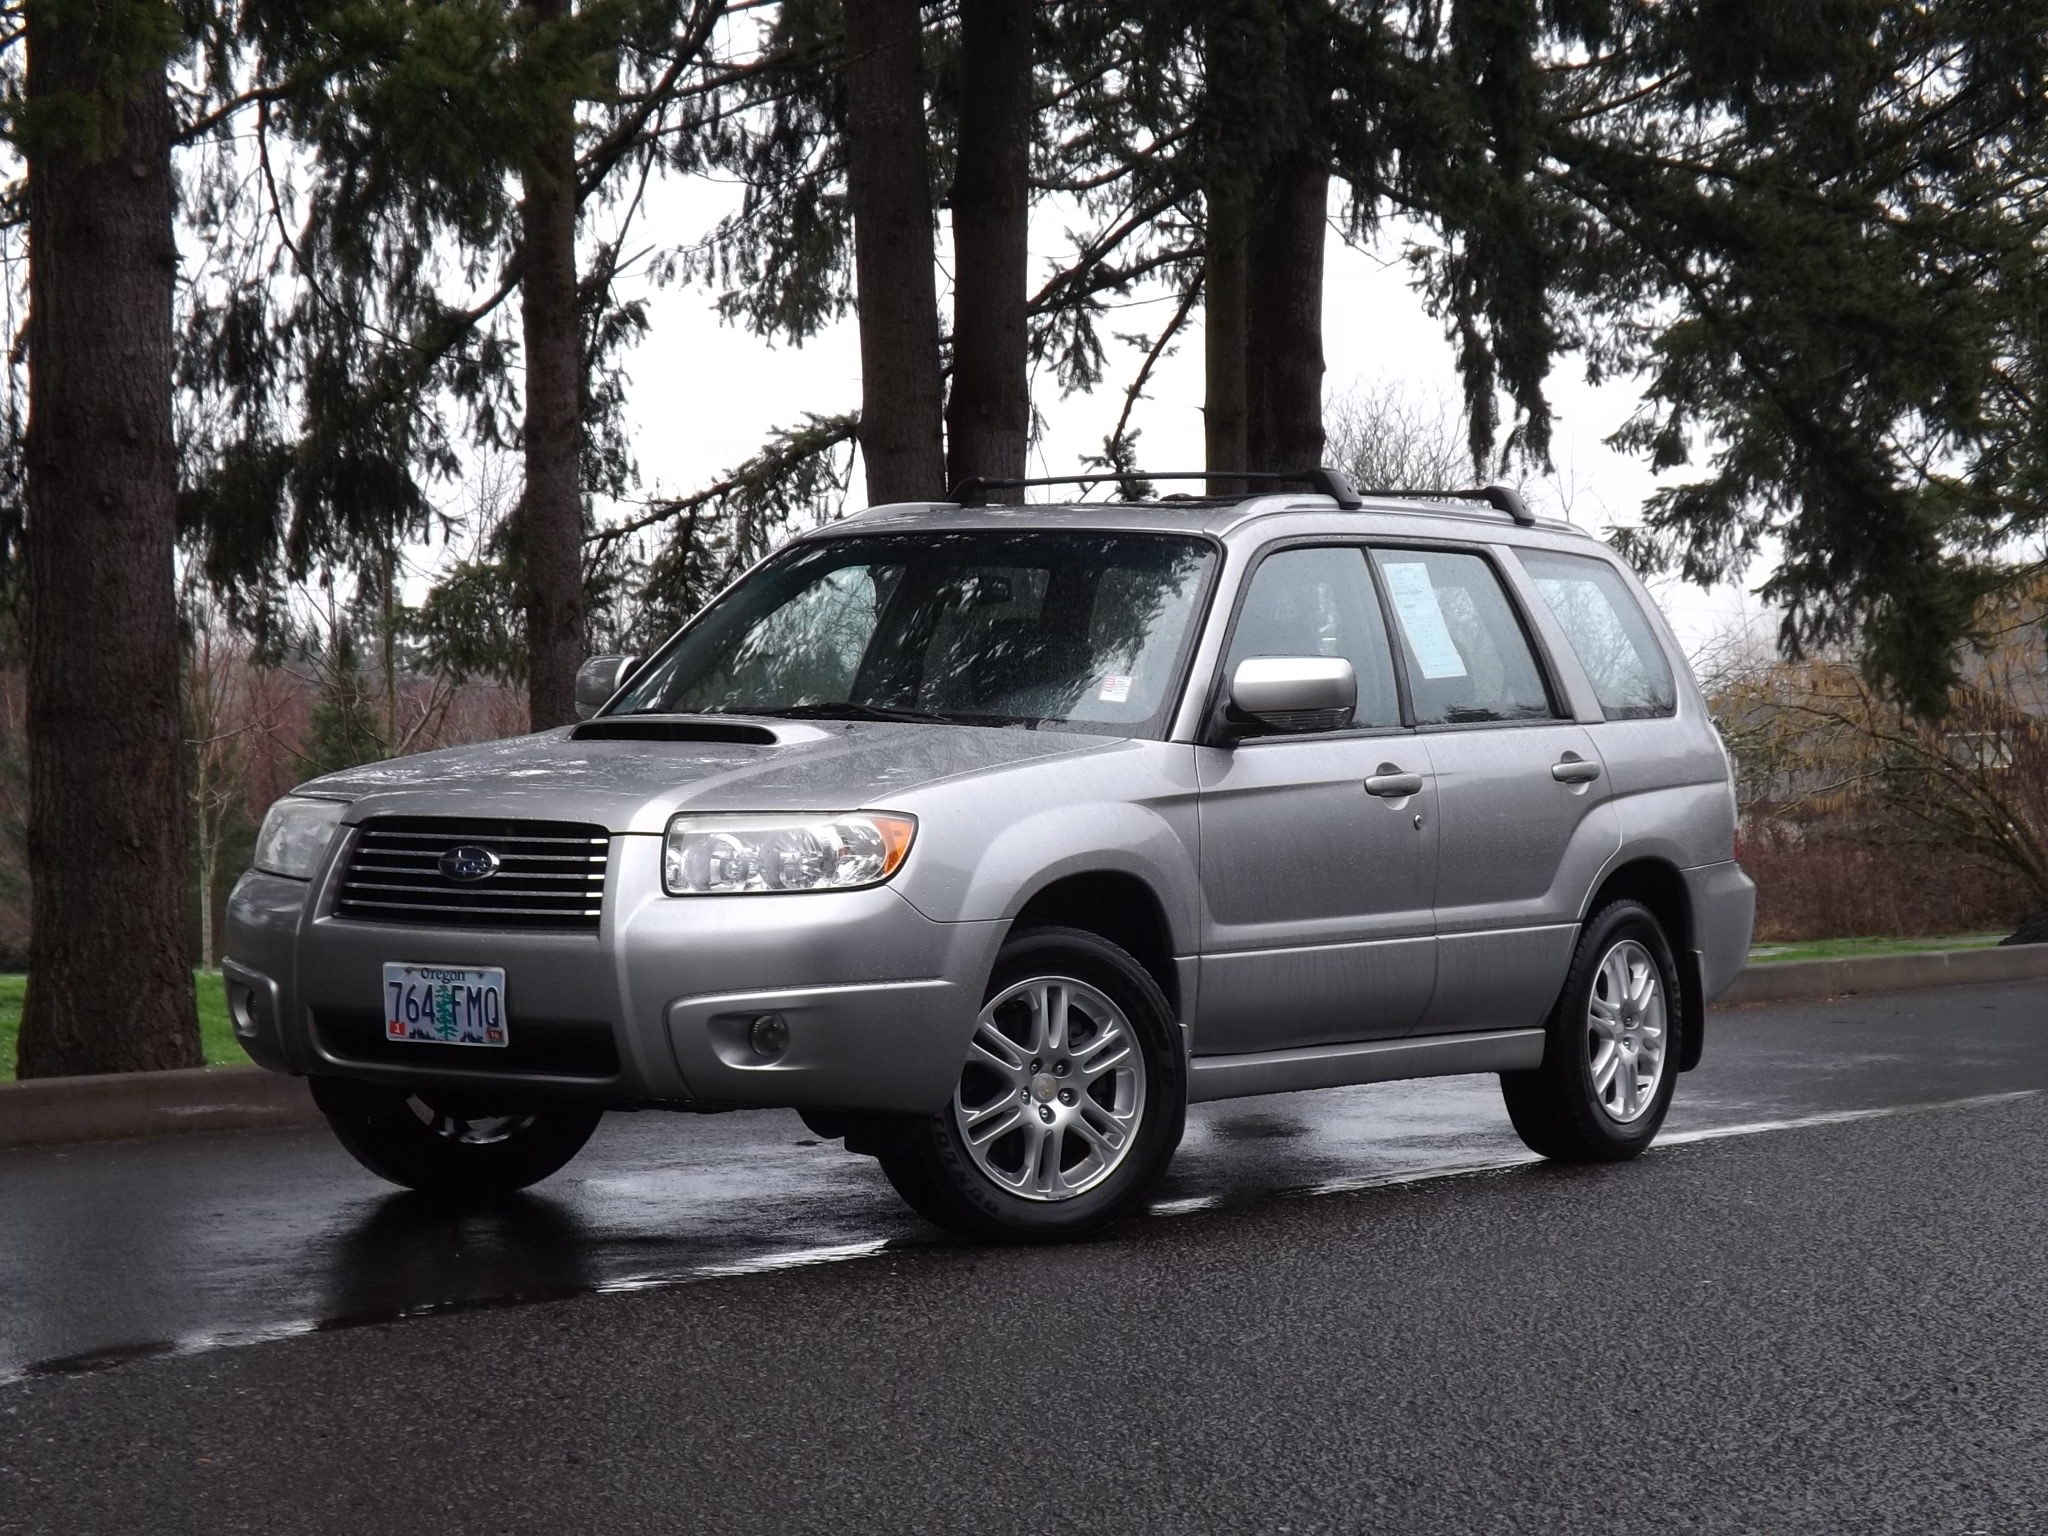 2006 subaru forester ii pictures information and specs. Black Bedroom Furniture Sets. Home Design Ideas